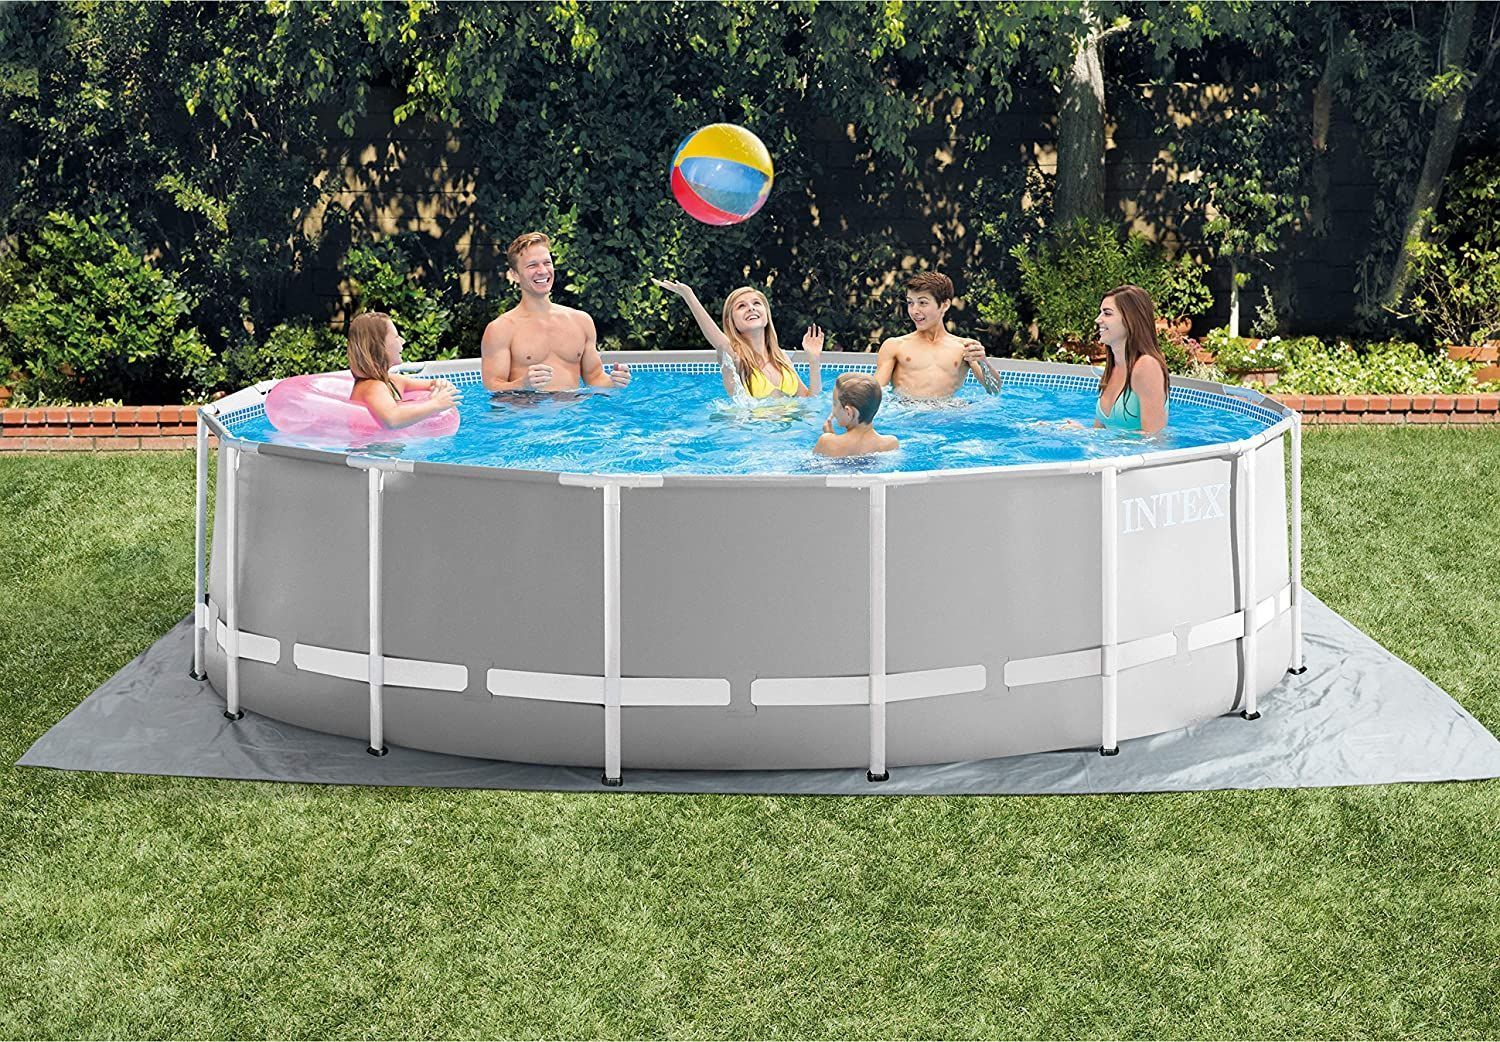 Intex 26725eh Prism Frame Set Above Ground Pool 15ft X 48in Gray Garden Outdoor Ad Above Ground Pool In Ground Pools Pool